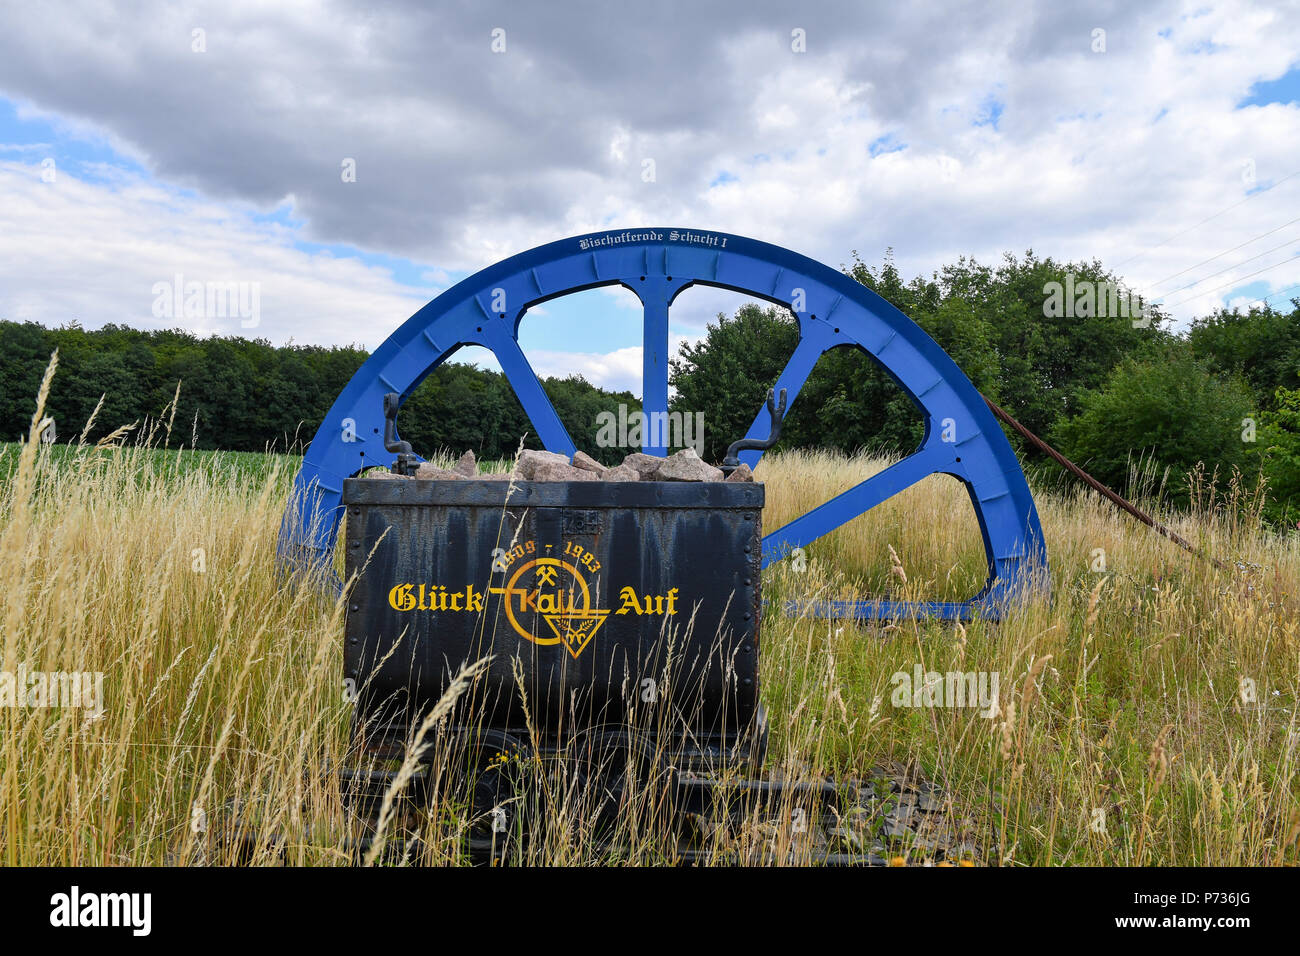 Bischofferode, Deutschland. 27th June, 2018. 27.06.2018, Bischofferode, Thuringen: A blue painted commuter wheel can be seen at the Schucktweg 'Gluck auf'. Protests of the miners at the close of the early 1990s made the work known nationwide. (to dpa 'hunger strike! - Search for clues 25 years after the Kali rebellion' from 28.06.2018) Credit: Jens Kalaene/dpa central image/dpa | usage worldwide/dpa/Alamy Live News - Stock Image